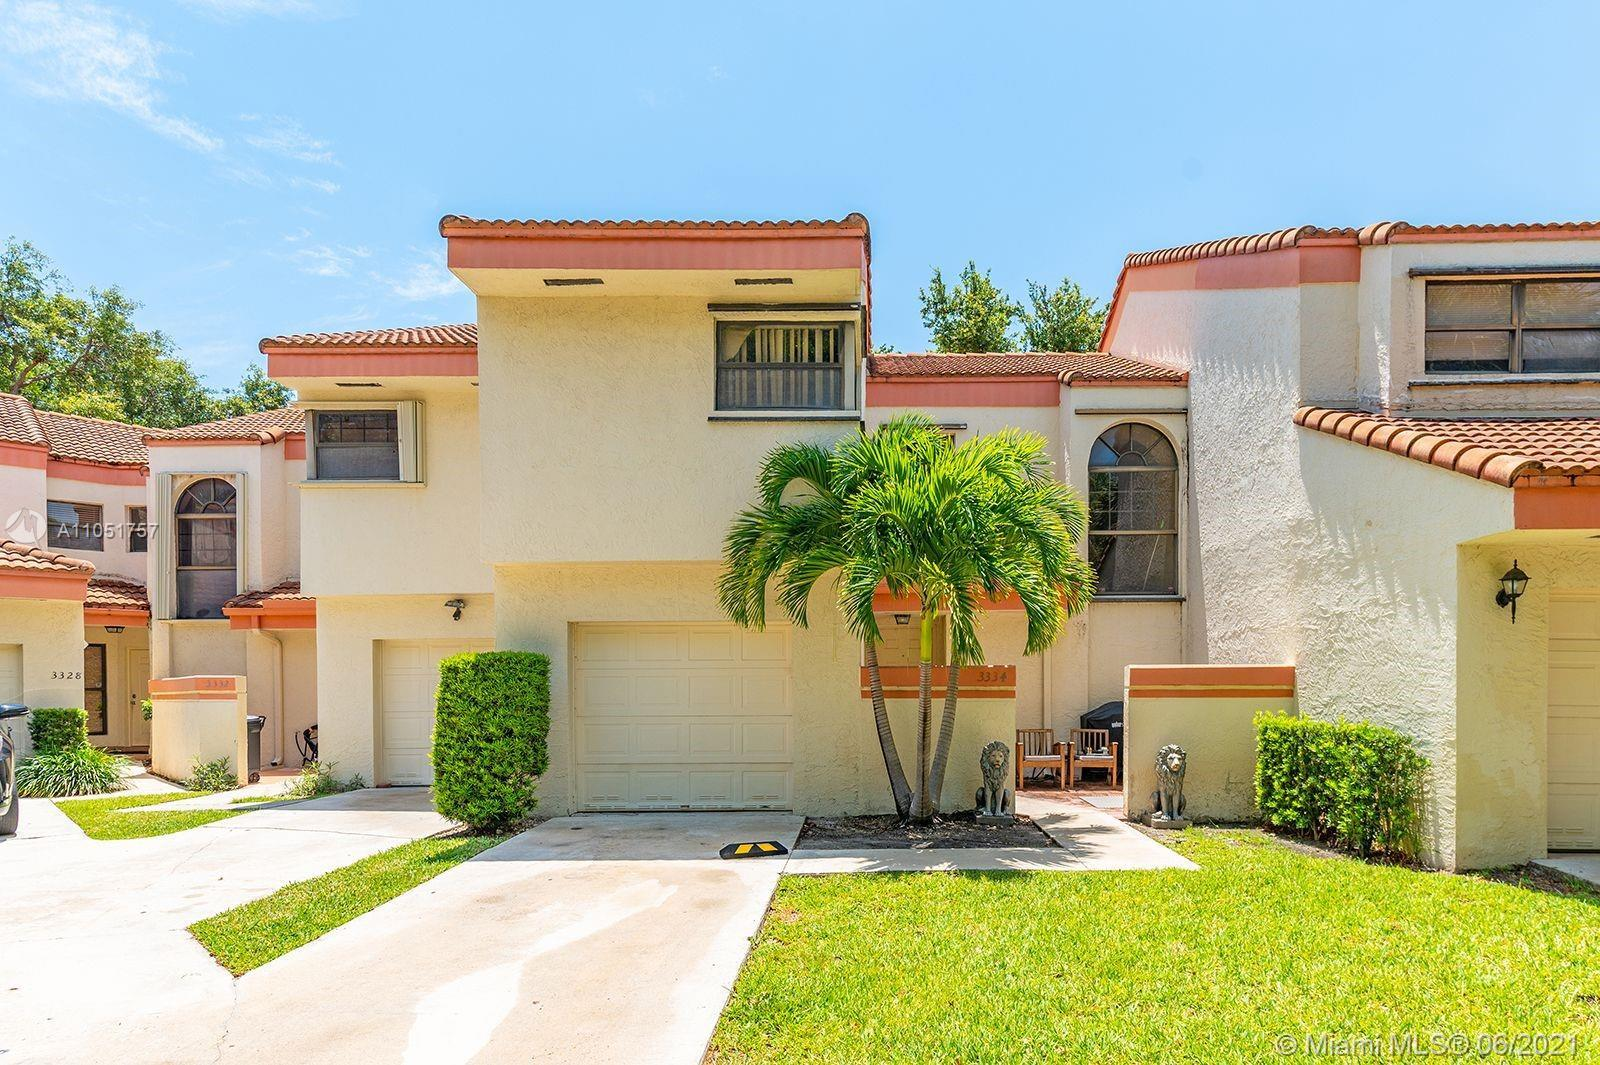 Sought after townhouse in upscale neighborhood of Emerald Hills featuring a 2 bedroom 2 1/2 bathroom